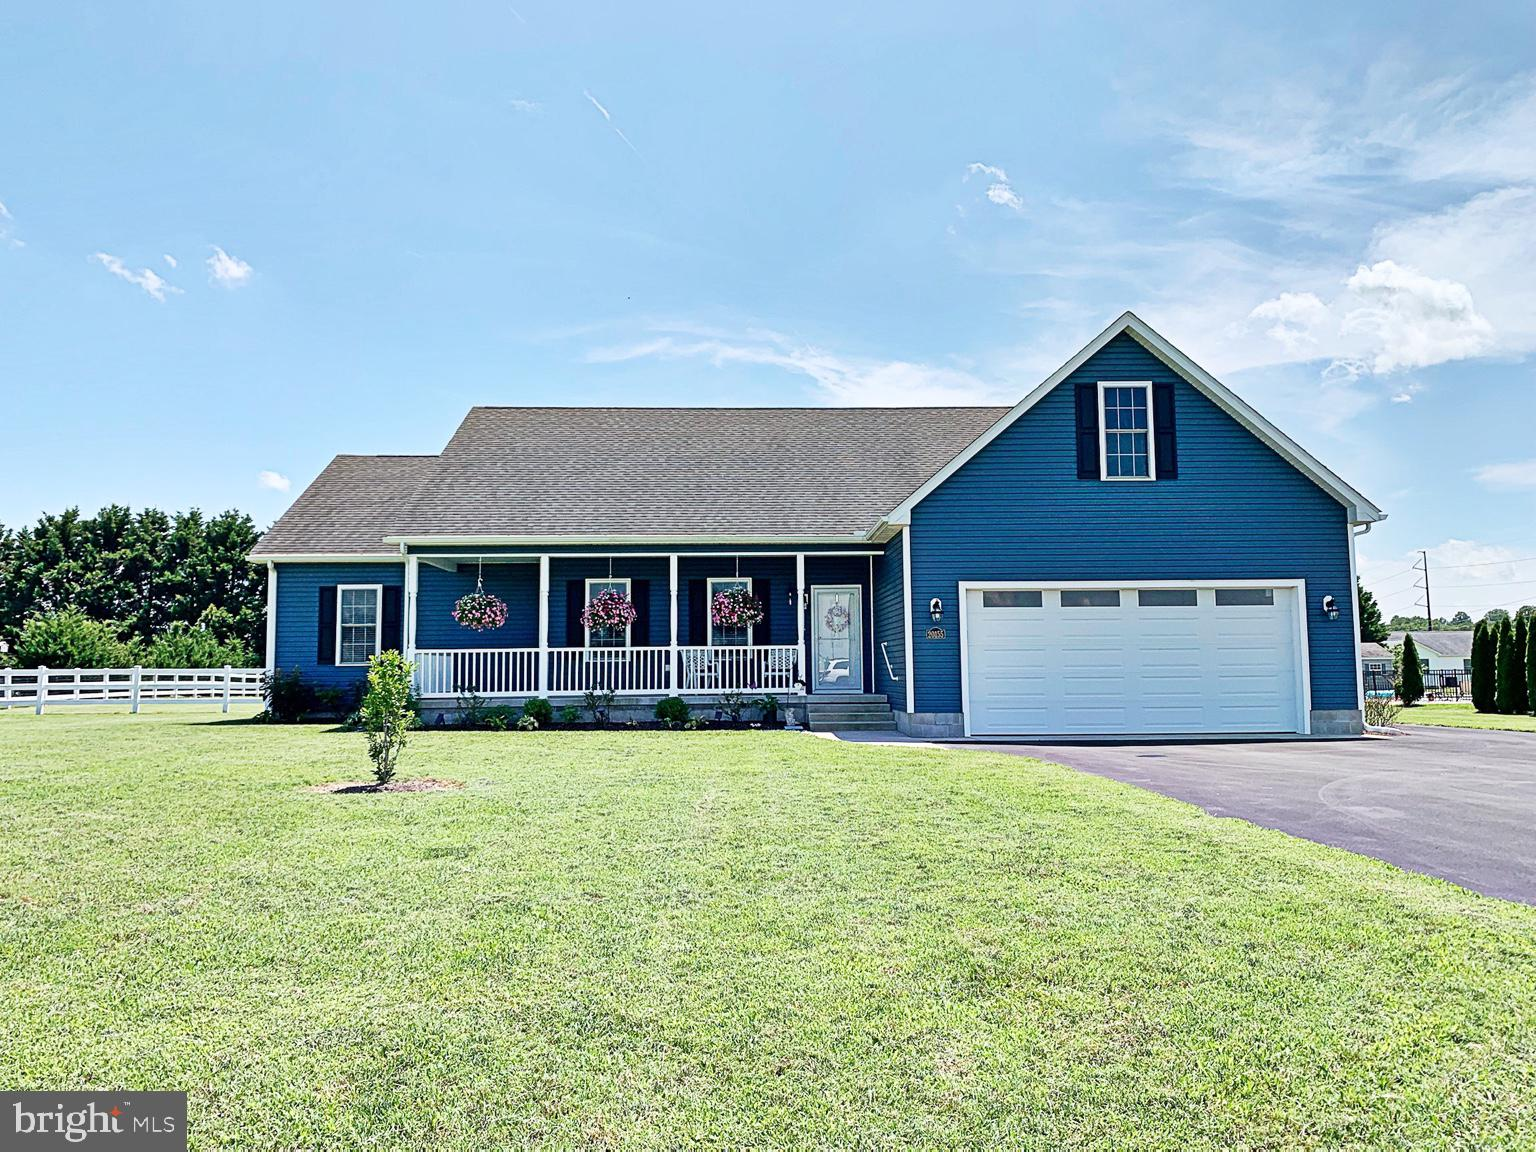 Hurry, hurry!  This one won't last long.  Fantastic 3 bedroom, 2 bathroom ranch in Lincoln!  Some incredible features include open concept main living area and kitchen, stainless appliances, granite counters, sunroom, walk in closets in each bedroom, hardwood flooring, oversized two car garage, shed, fenced in yard, water treatment system, fully floored attic just waiting for you to add a bedroom/bathroom, irrigation system, and so much more.  Rock and sip sweet tea on the front porch!  HVAC has been moved from crawlspace to the garage for ease of maintenance. Crawlspace is fully insulated with dehumidifier. Tons of parking and an amazing neighborhood.  Get on the phone with an agent now.  This one is gonna be gone in the blink of an eye!